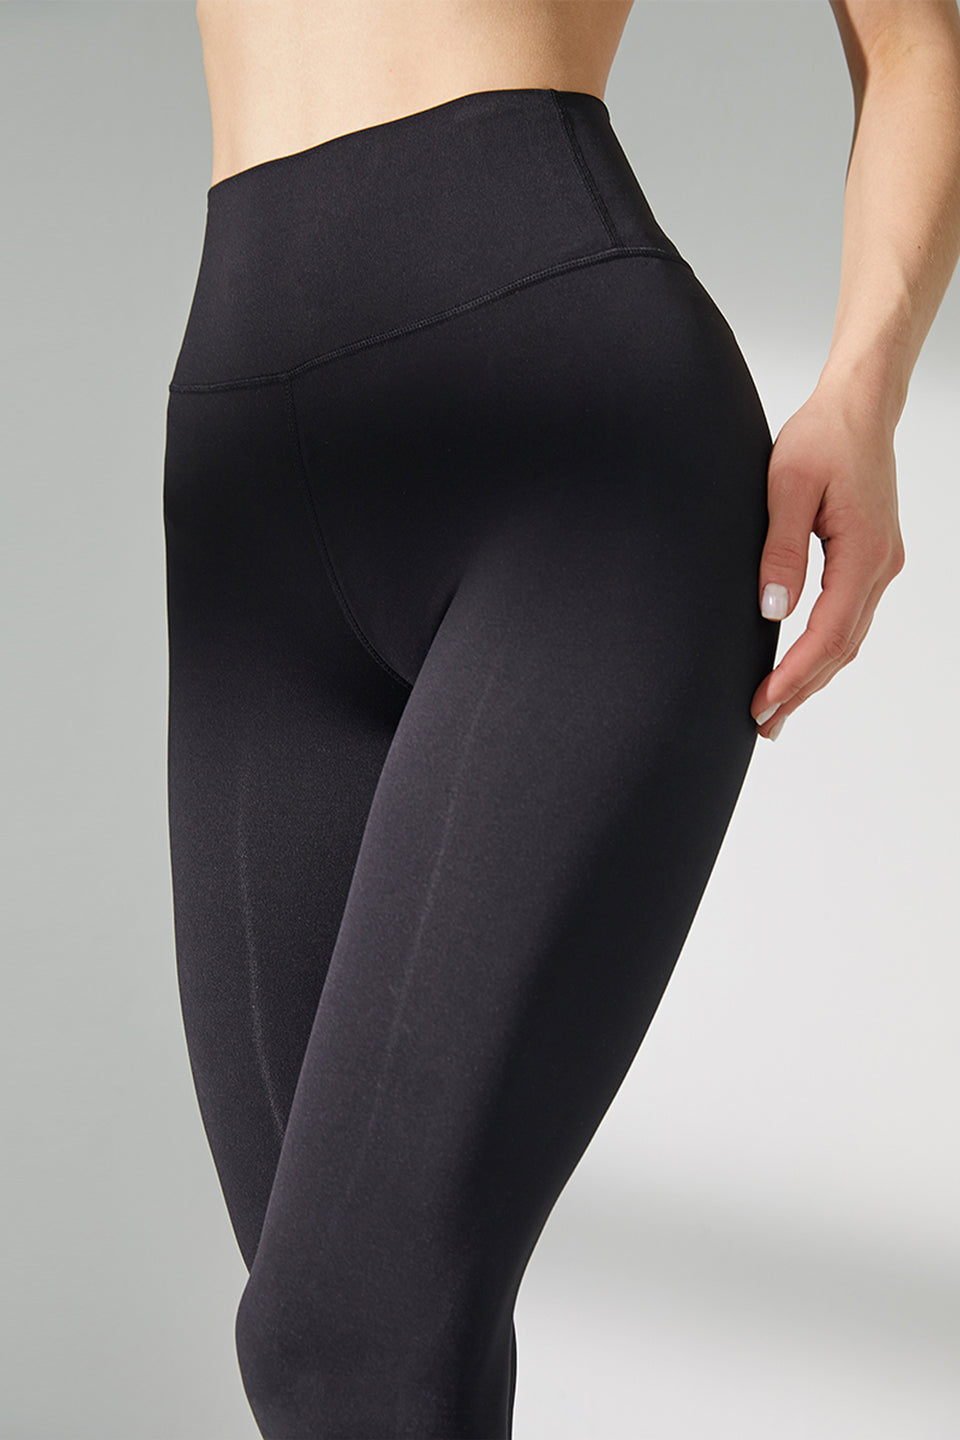 TA Lounge Legging